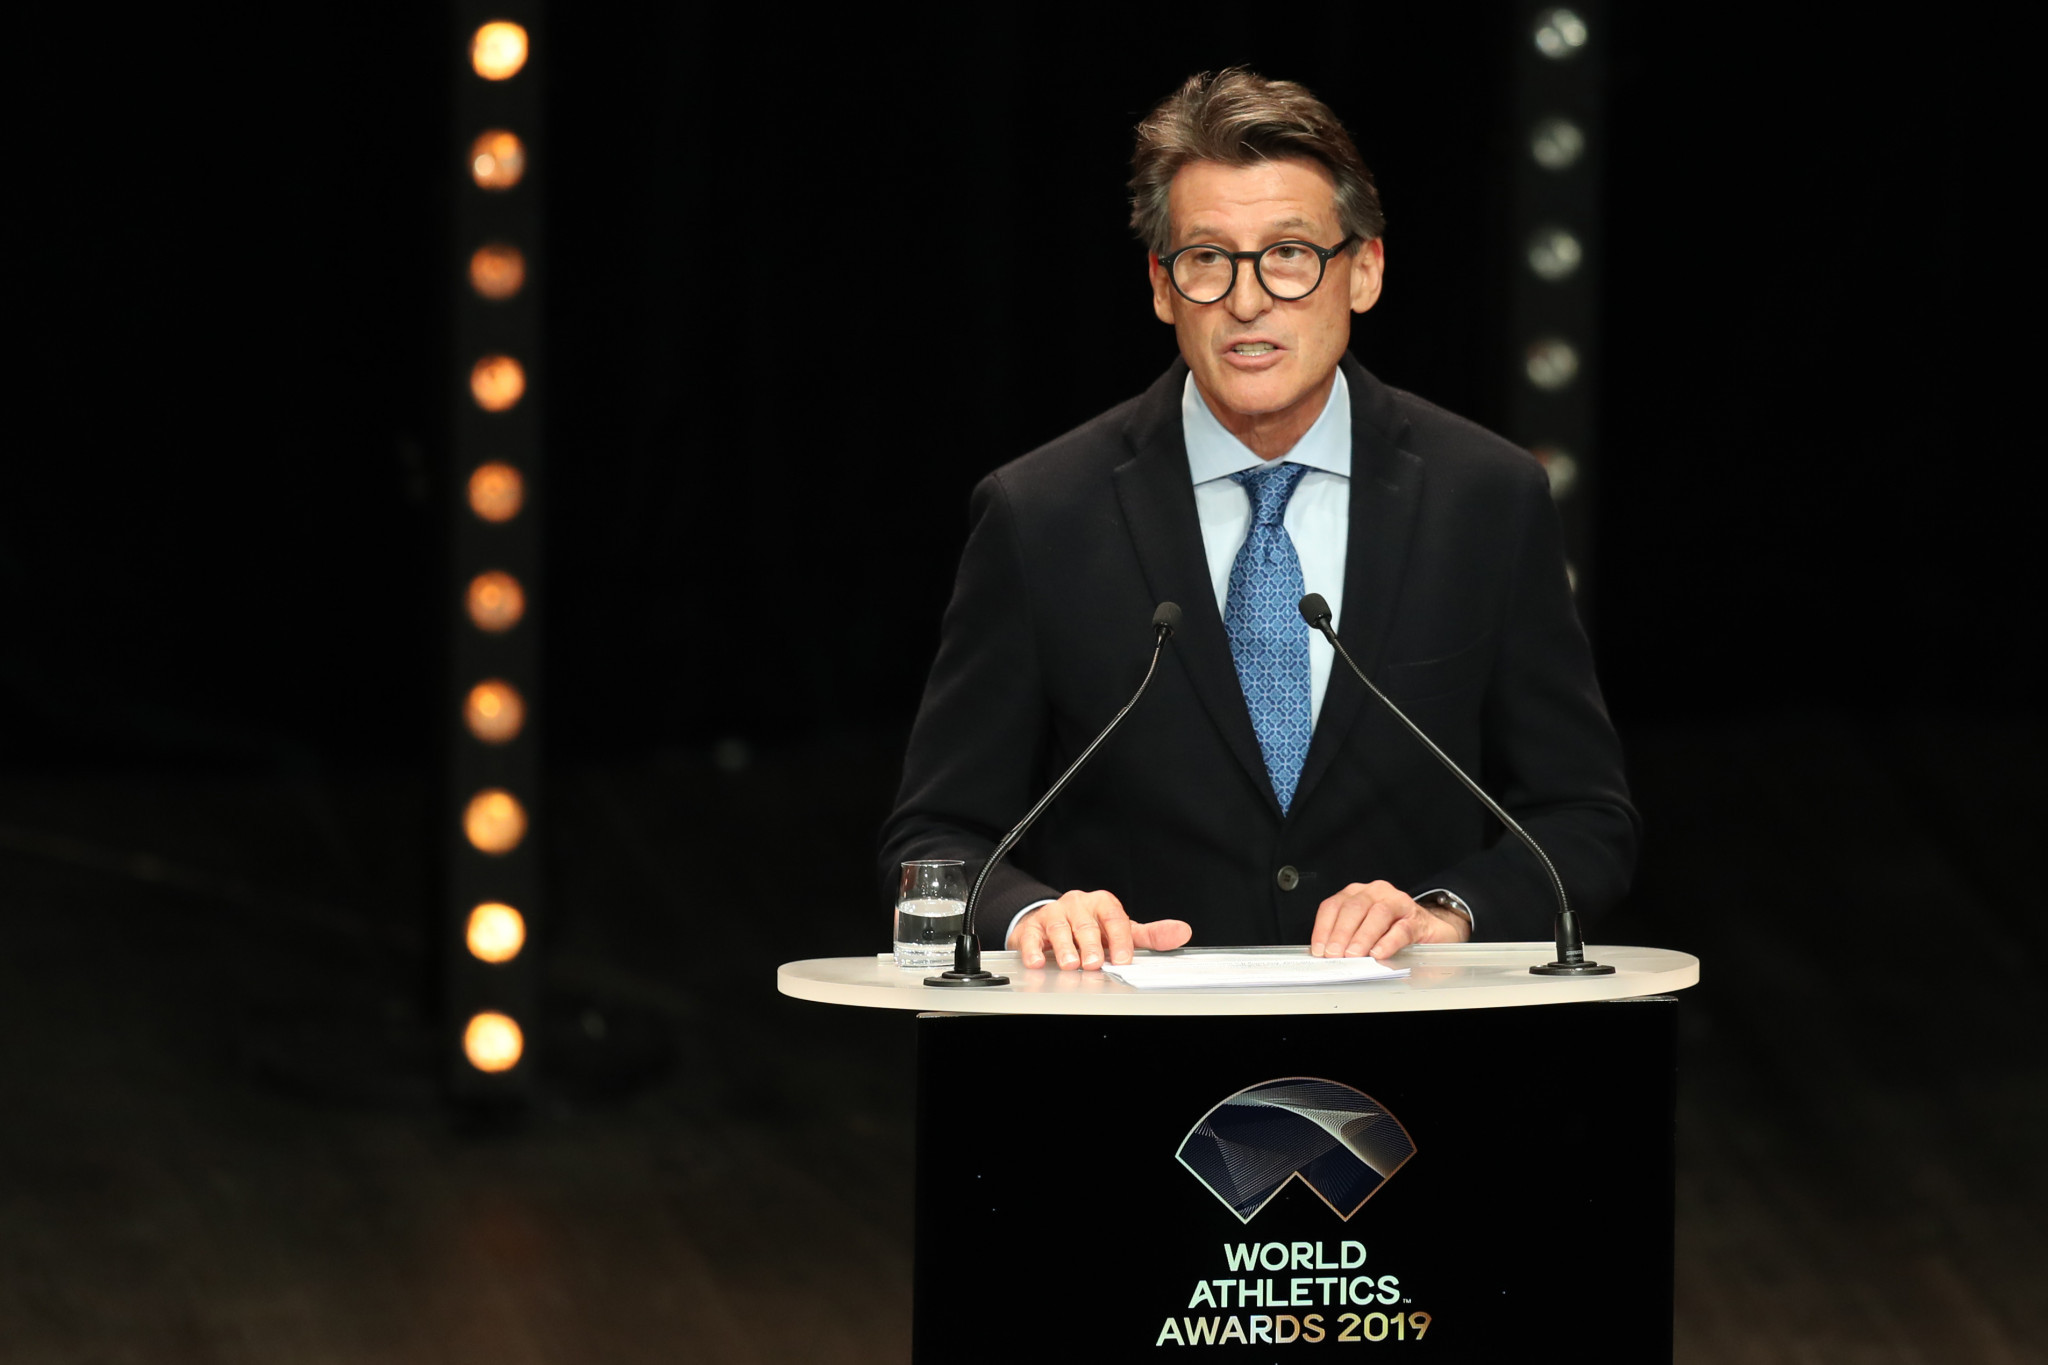 World Athletics President Sebastian Coe said the organisation must